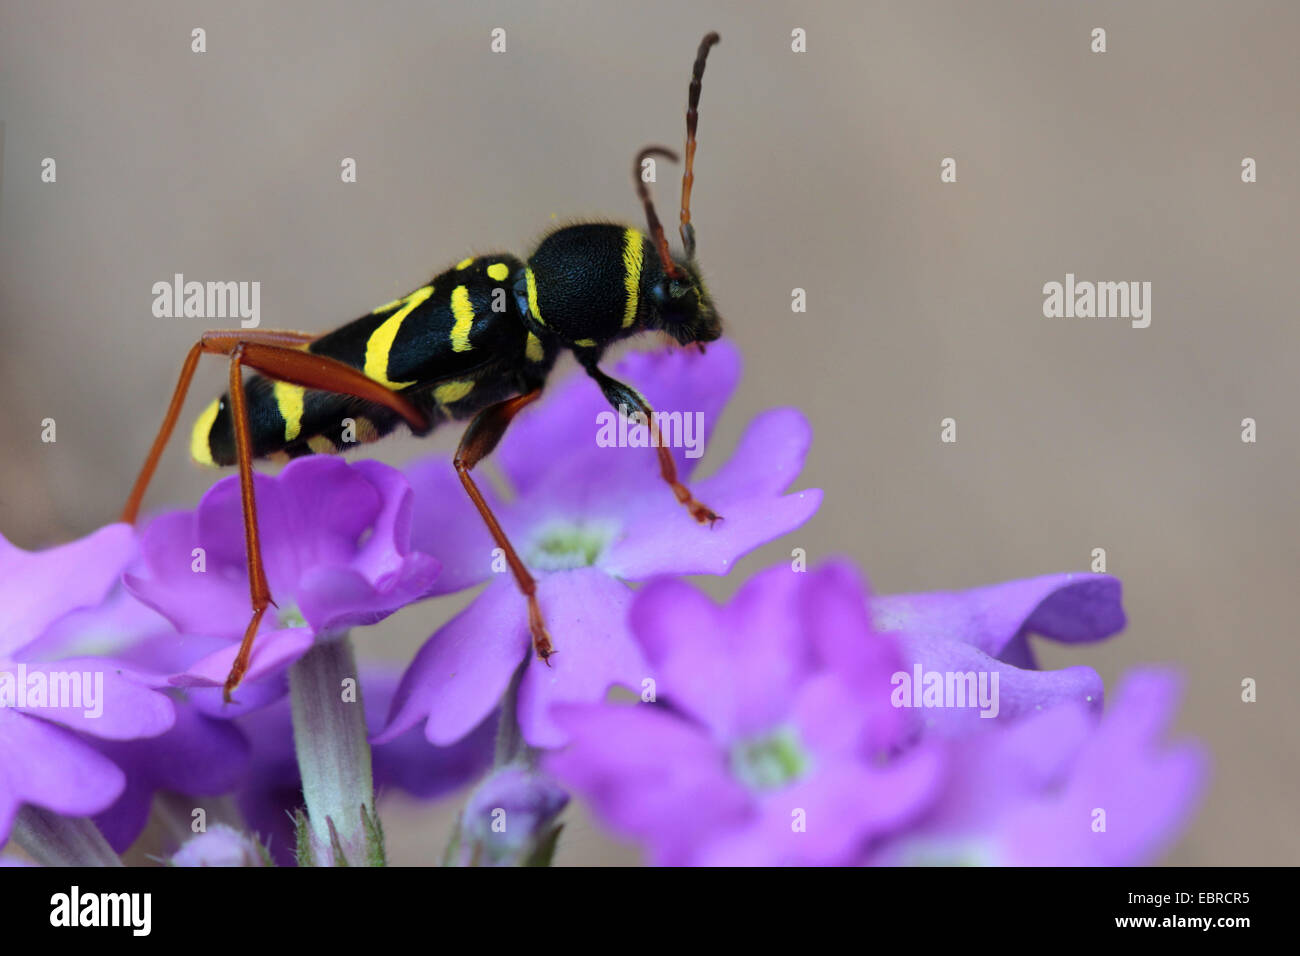 wasp beetle (Clytus arietis), sitting on pink flowers, Germany - Stock Image